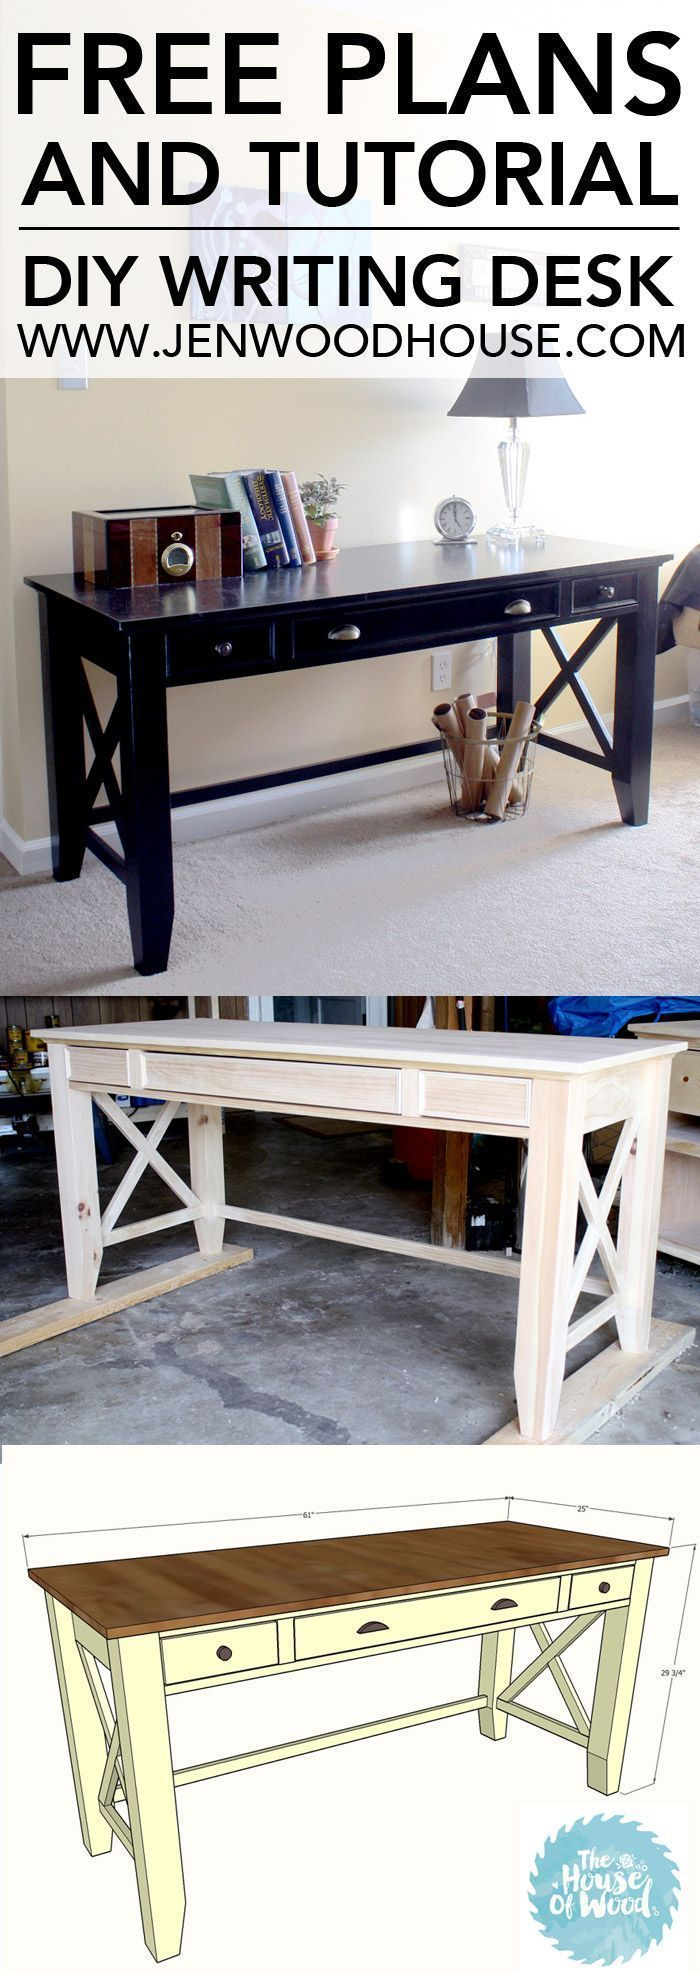 Uncategorized Free Wood Desk Plans best 25 woodworking desk plans ideas on pinterest projects and woodworking